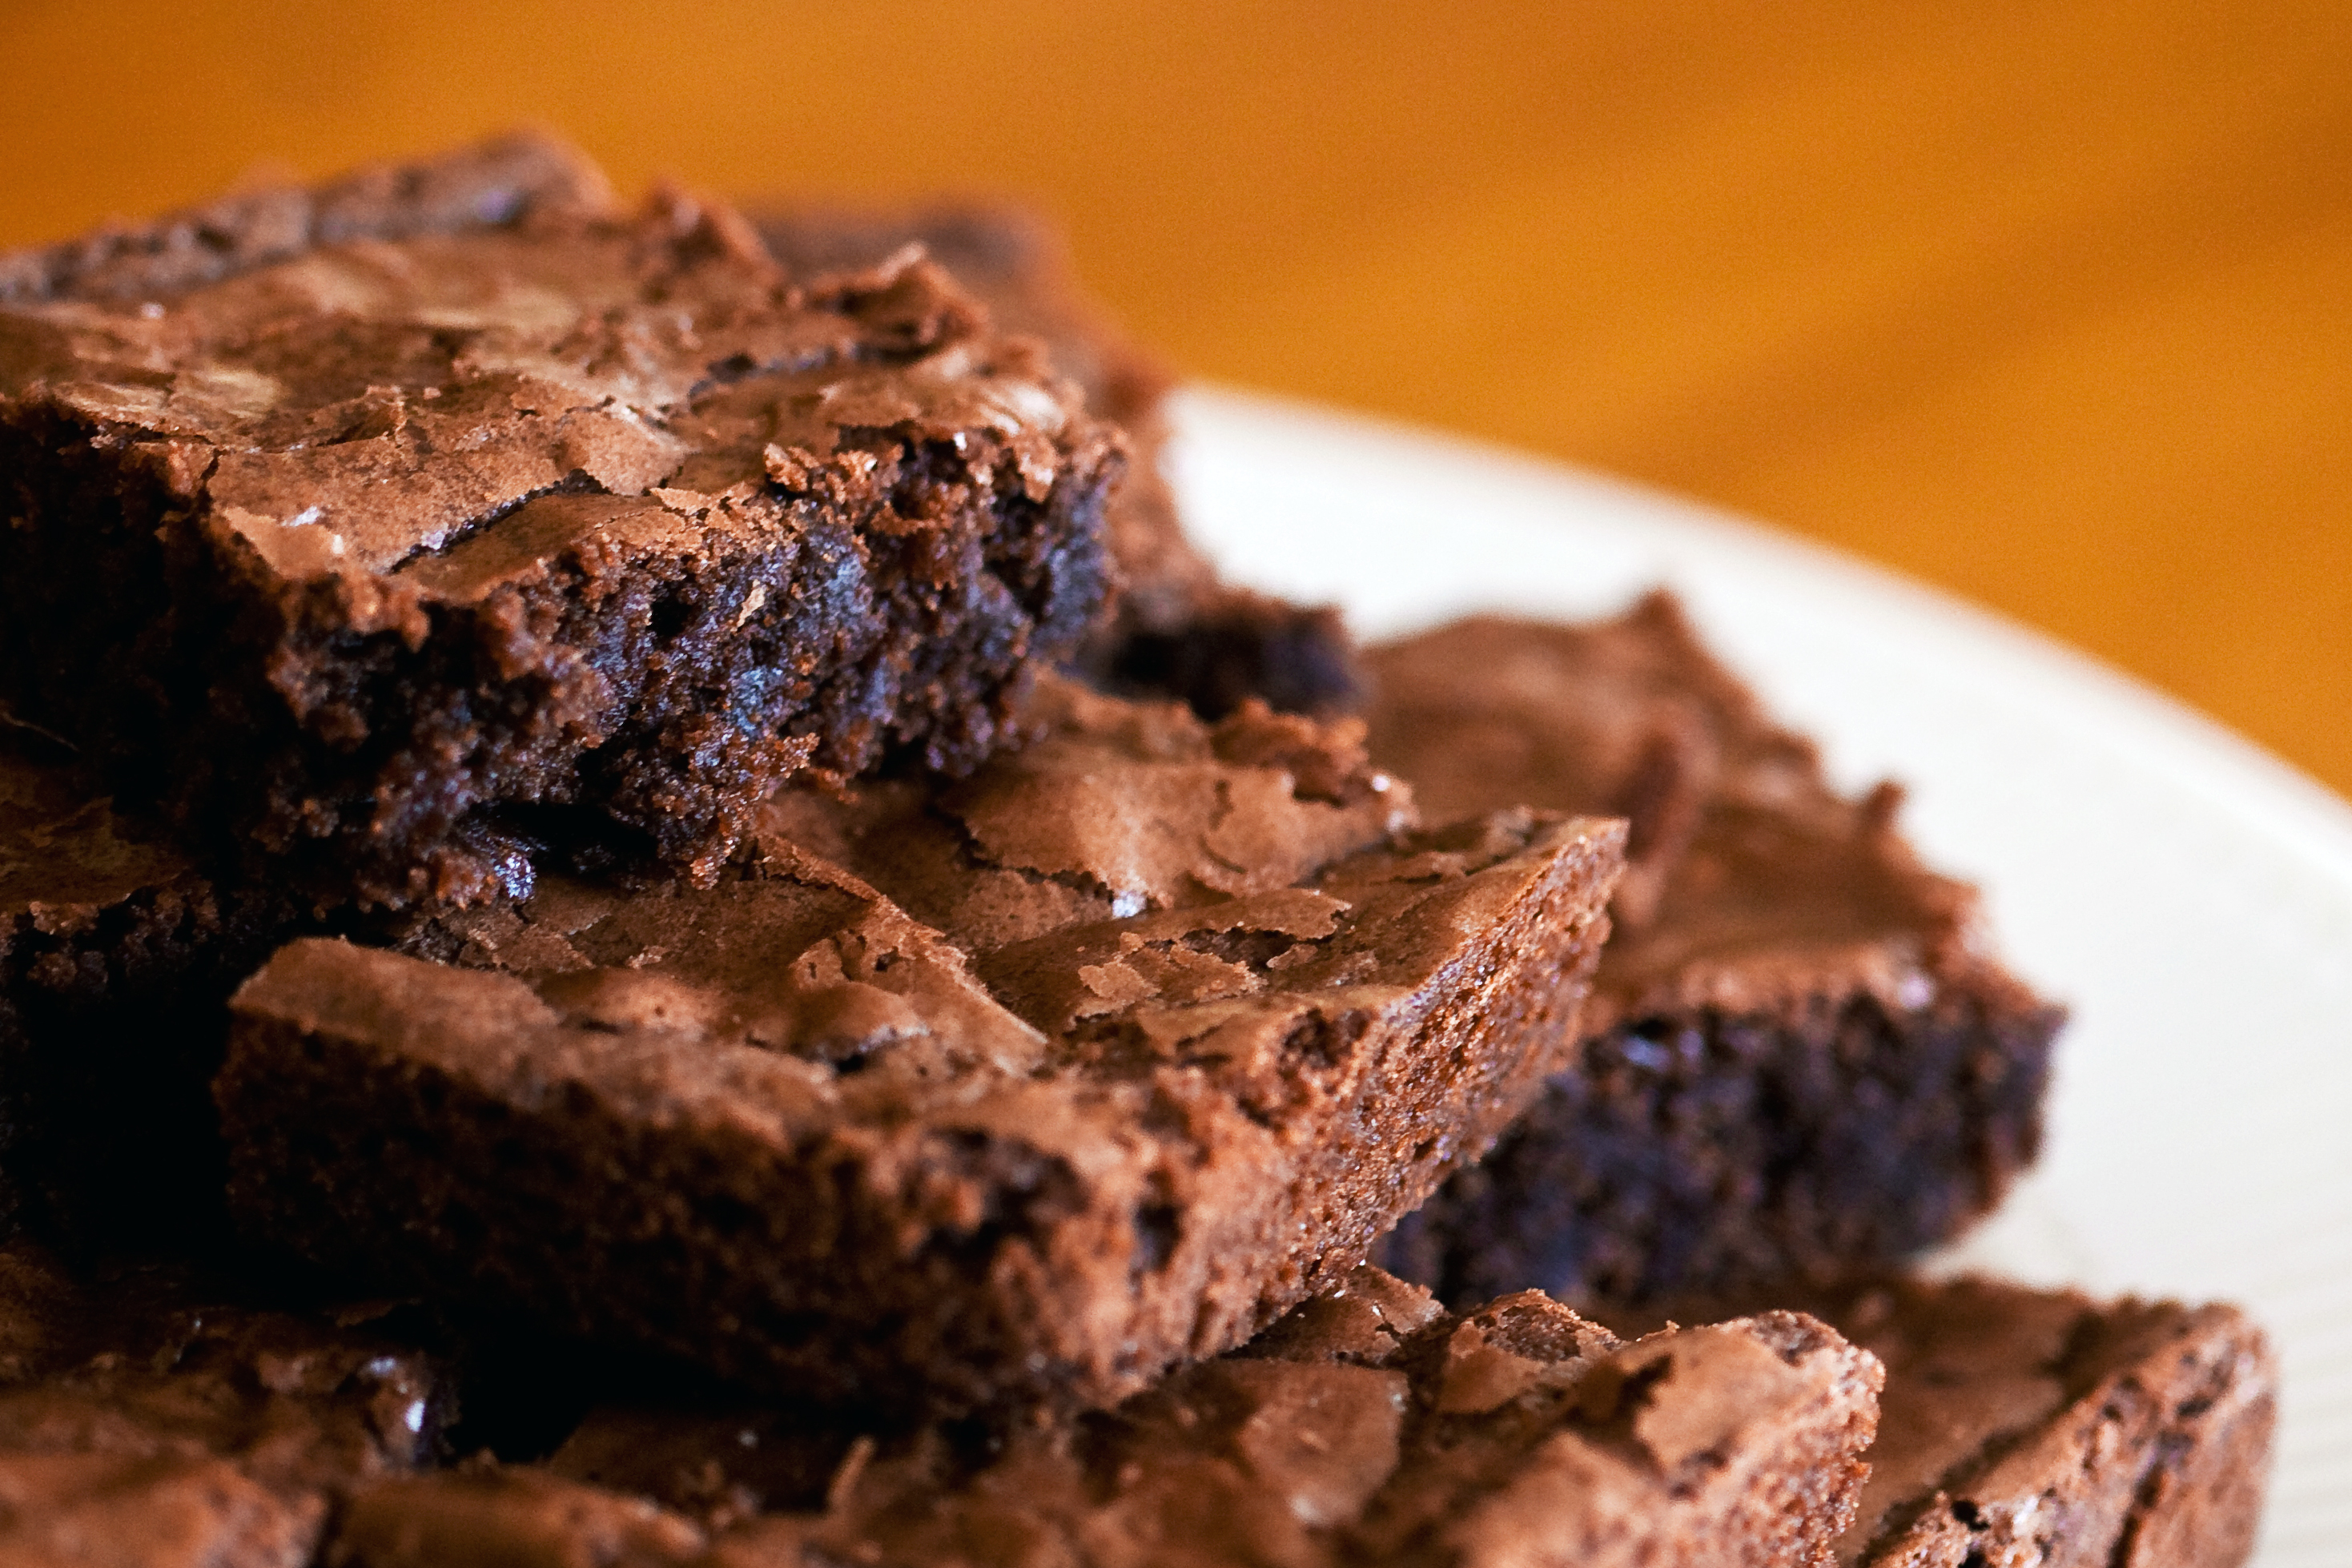 How to Make Black Bean Brownies For a Gut-Healing Snack